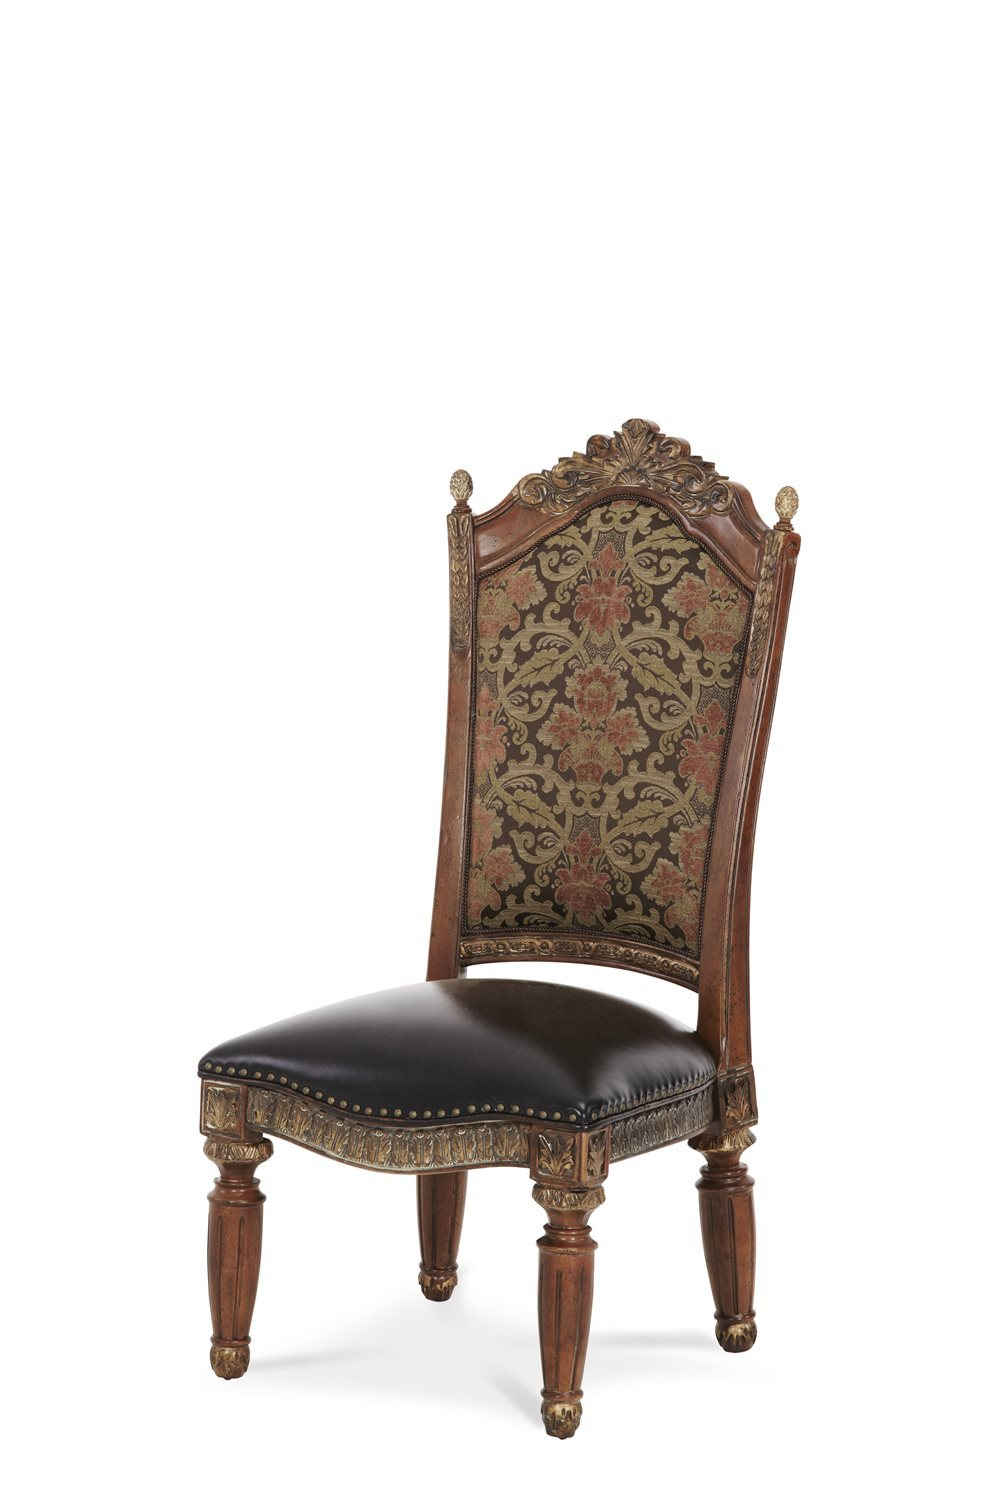 Aico Amini Villa Valencia 2 Side Chair in Classic Chestnut